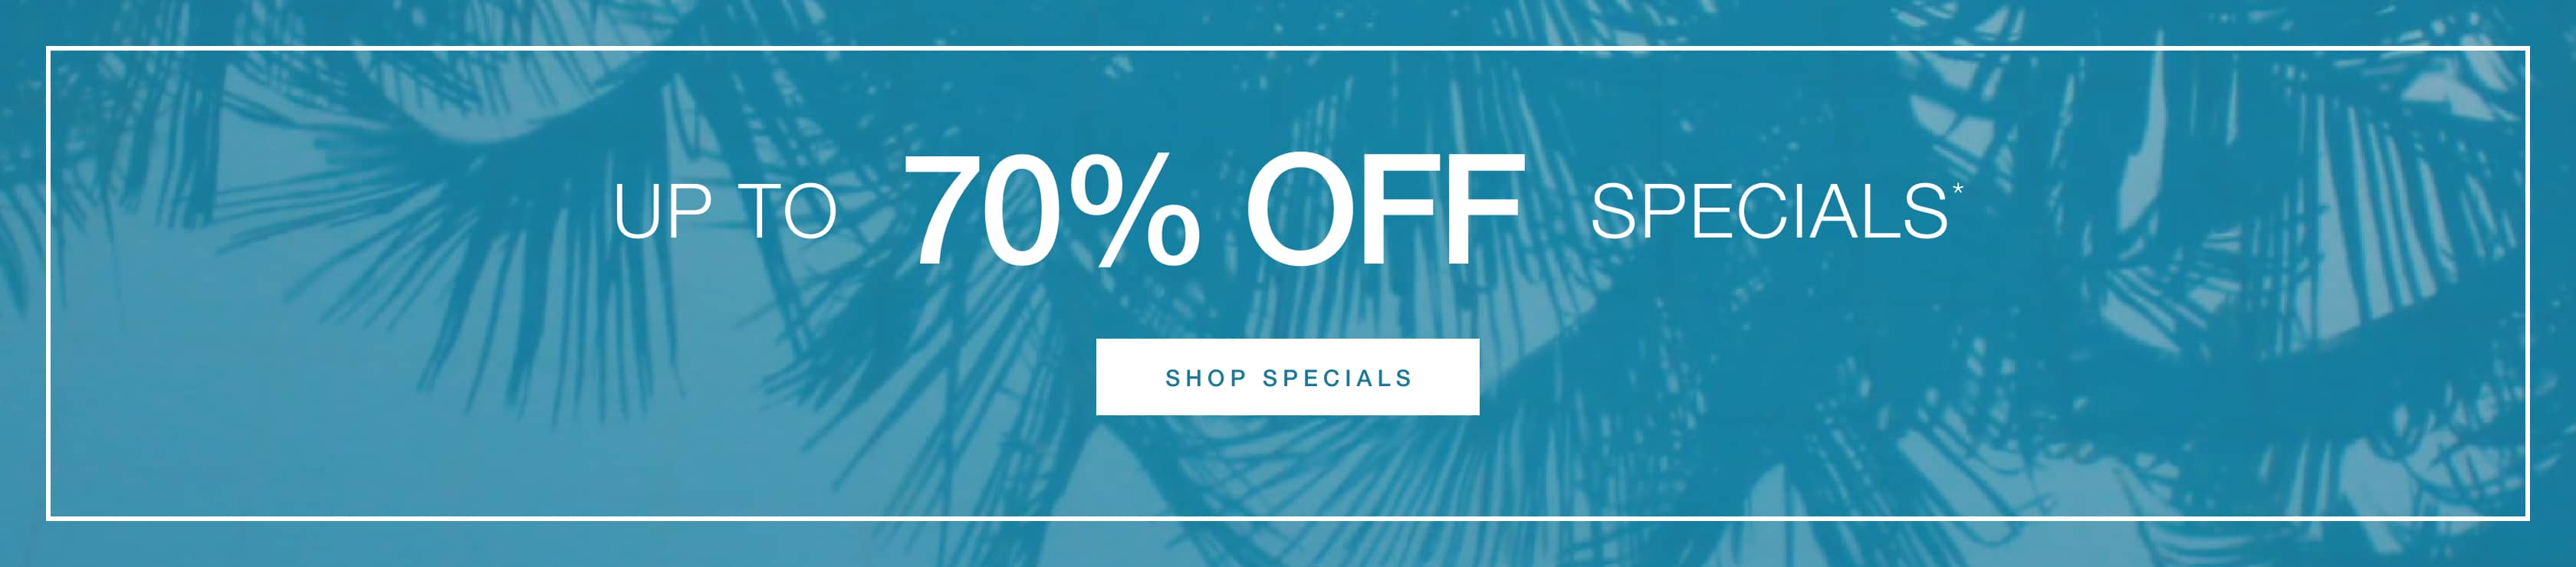 Take Up to 70% Off Specials